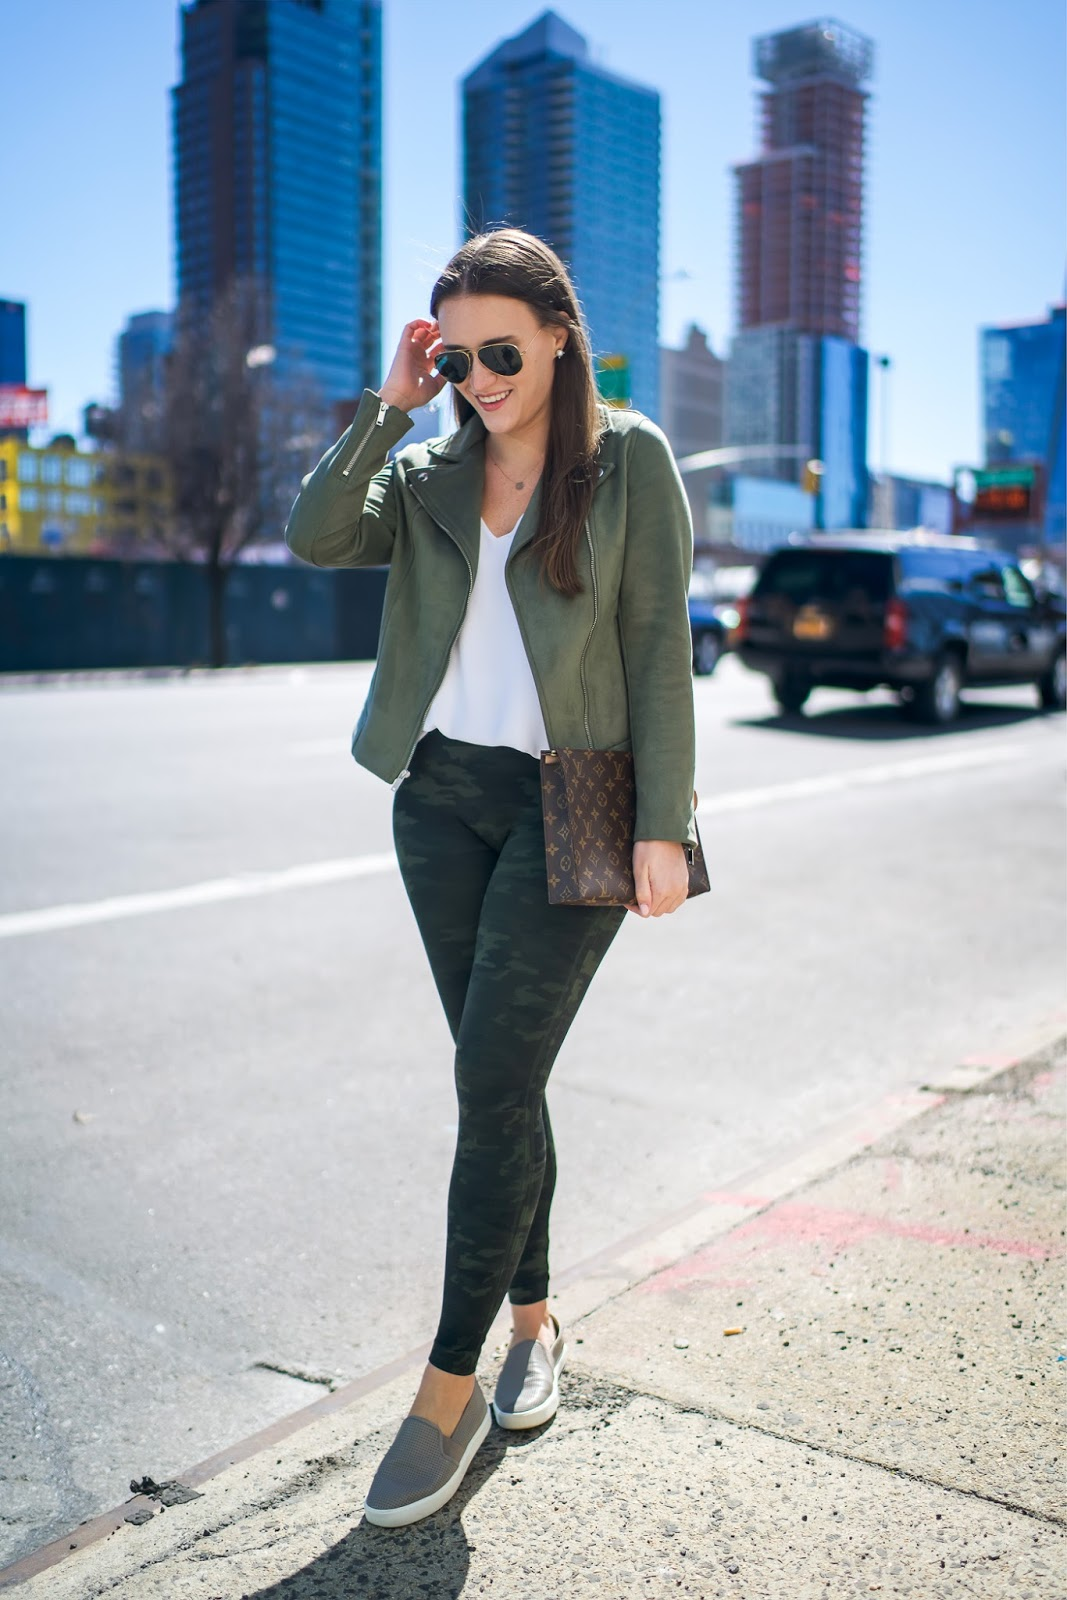 Four Spring Fashion Items I Can't Stop Wearing by popular New York fashion blogger Covering the Bases